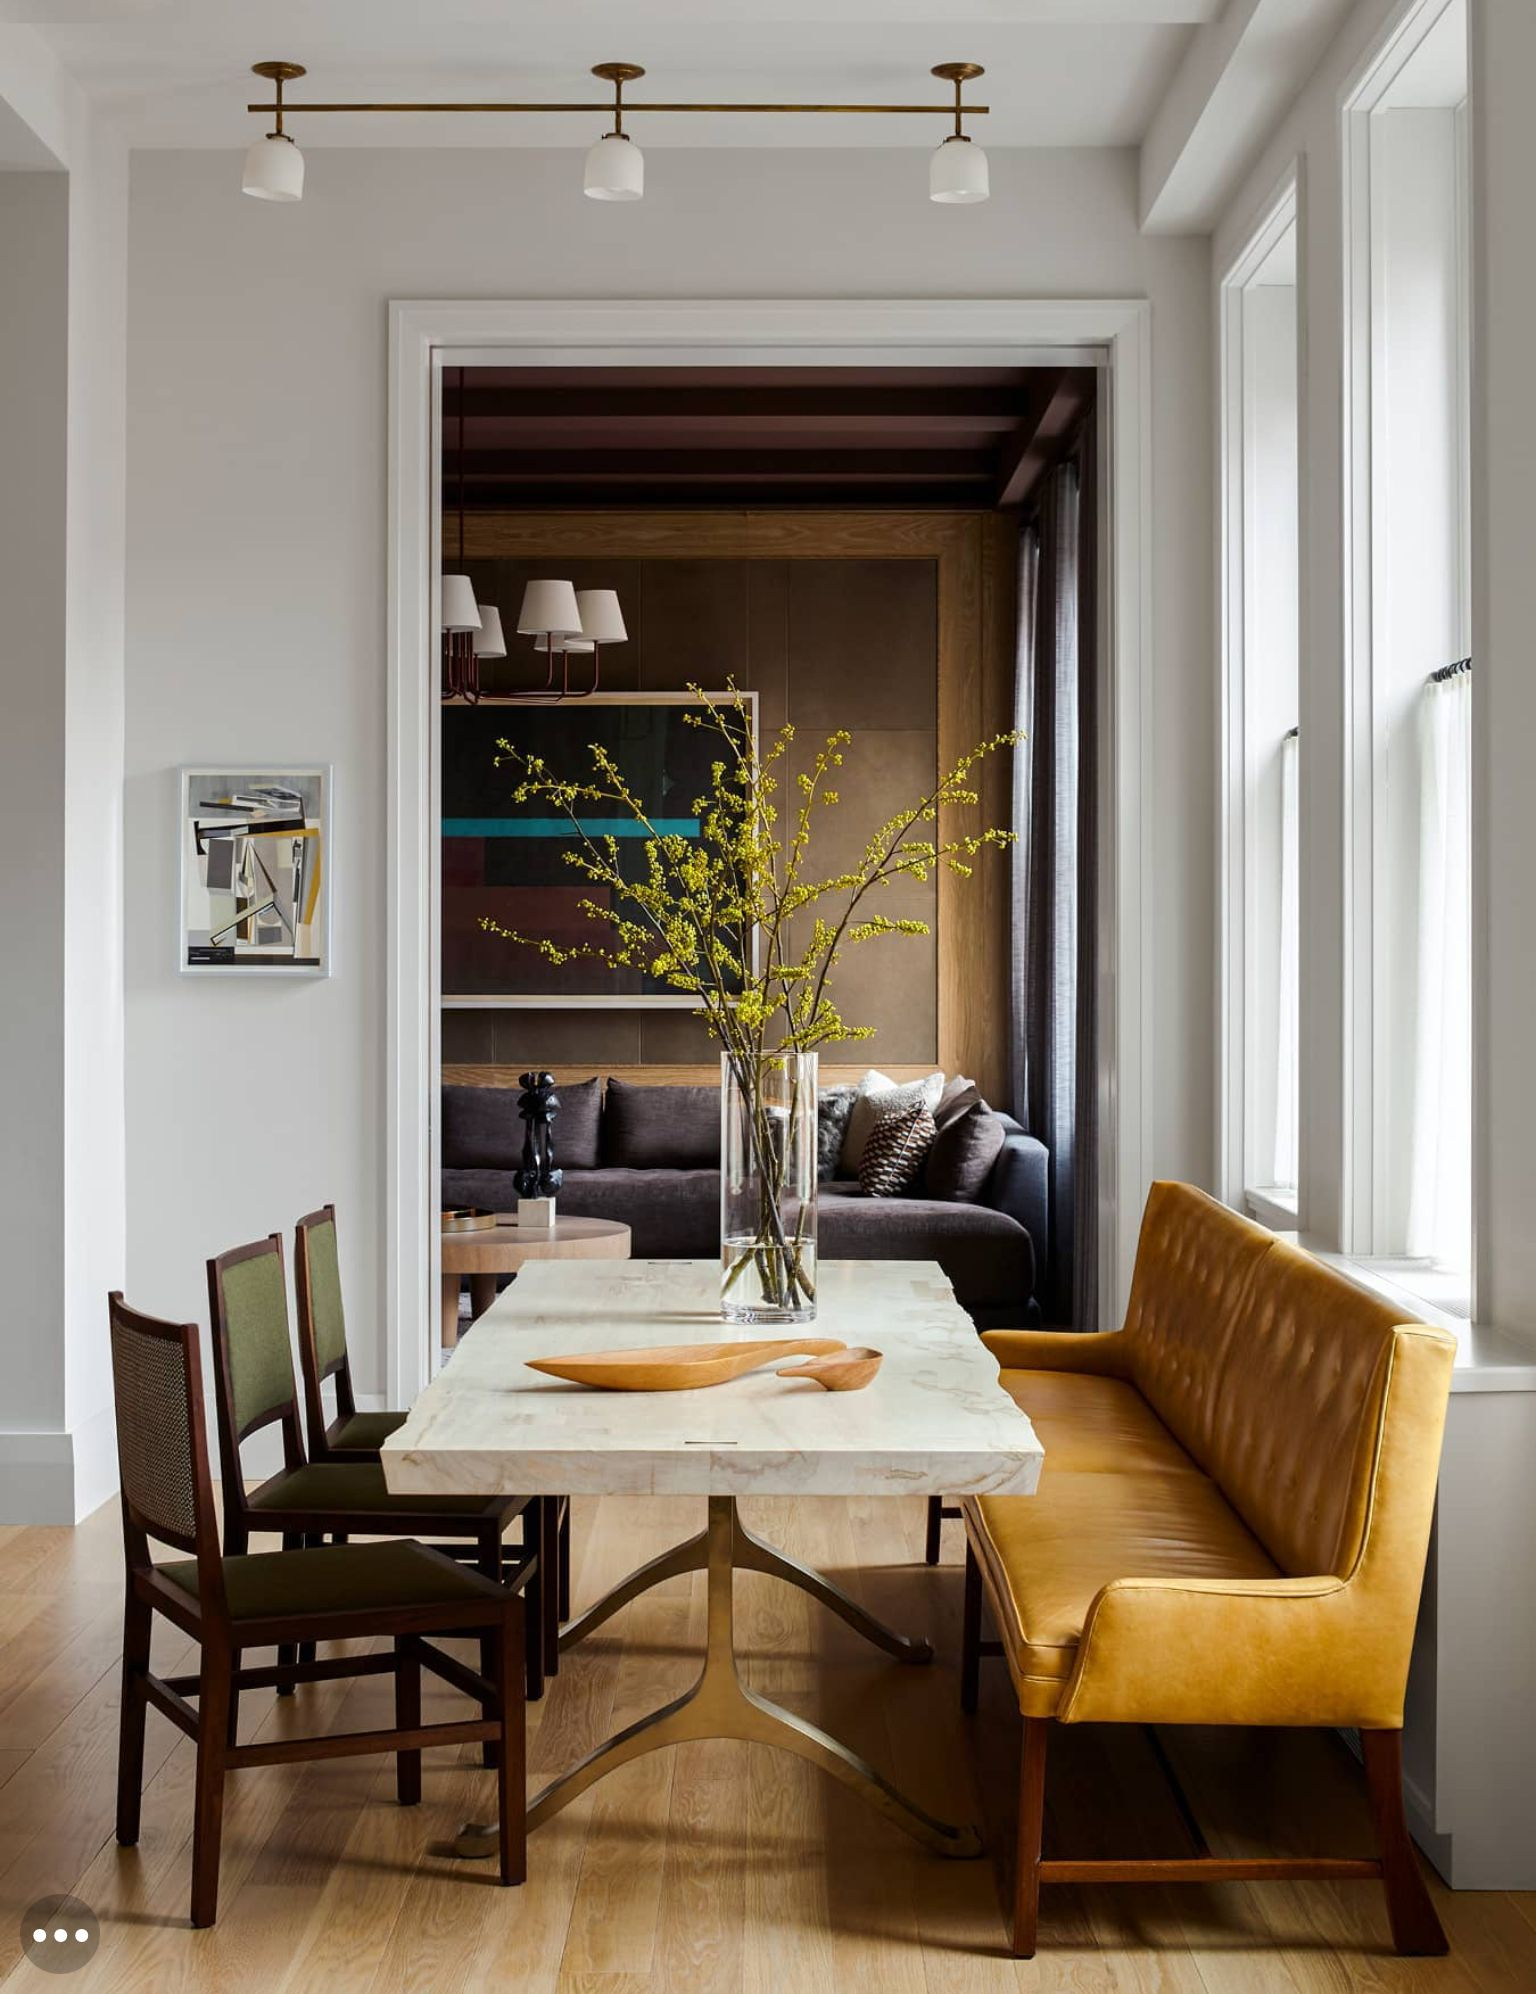 Pin By Paige Snow On Prud Hommes Dining Room Inspiration Modern